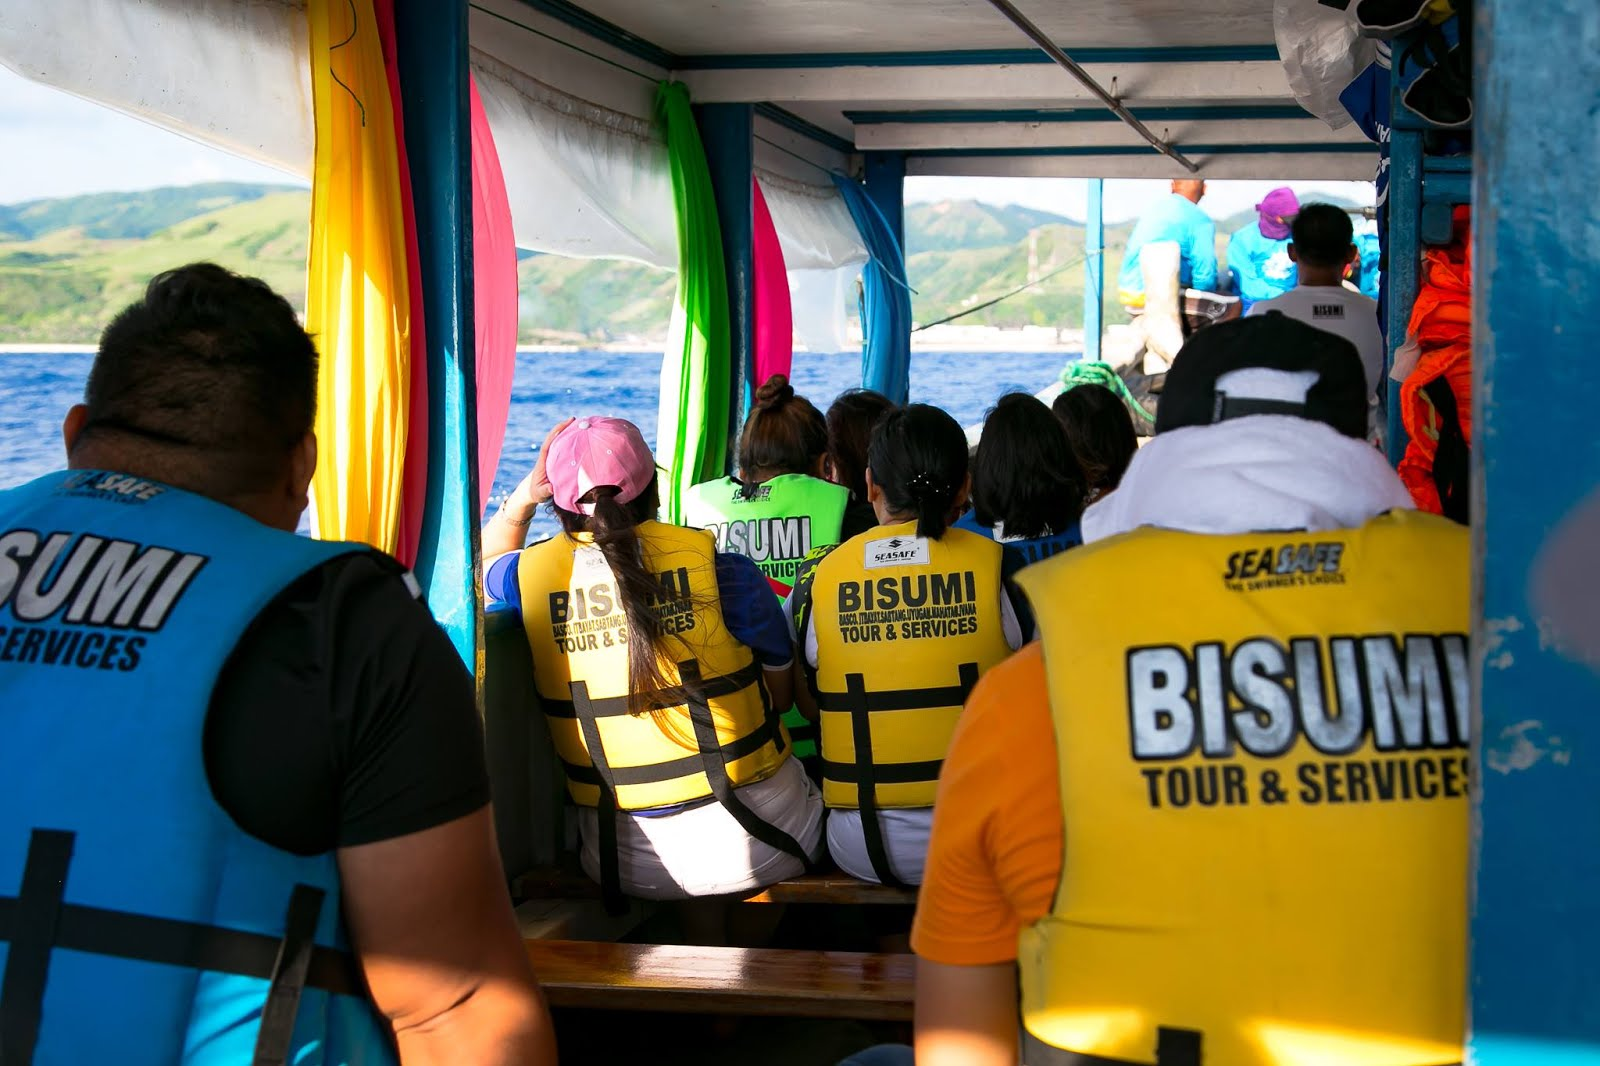 Safety first for Island Hopping